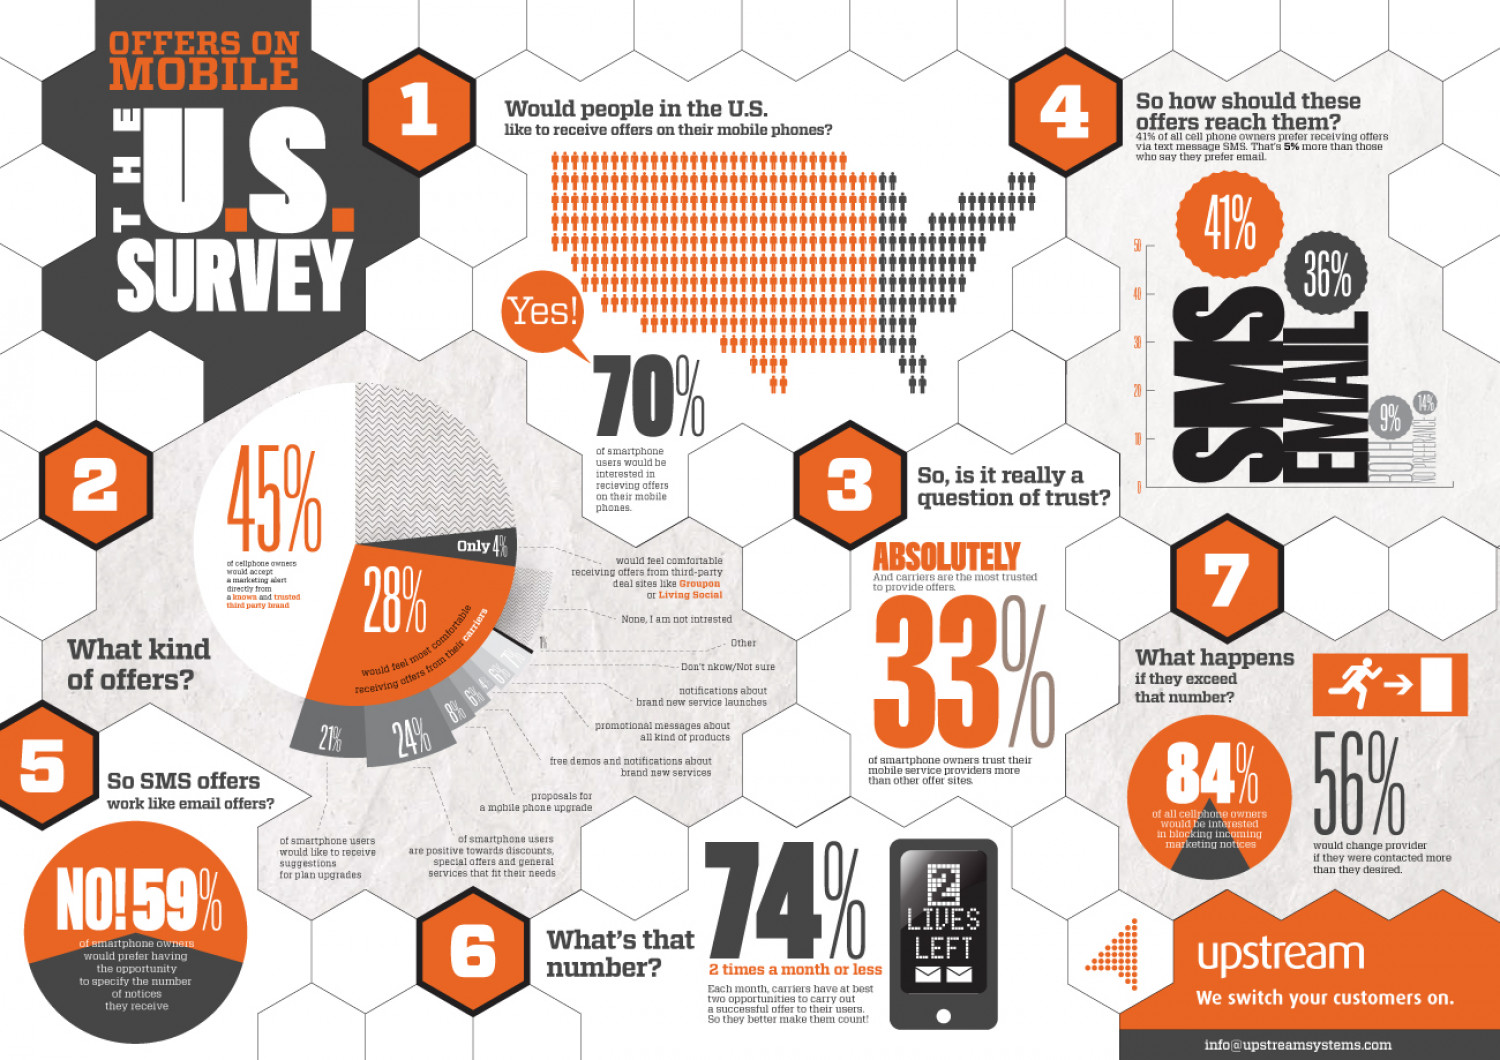 Offers on Mobile: The US Survey Infographic